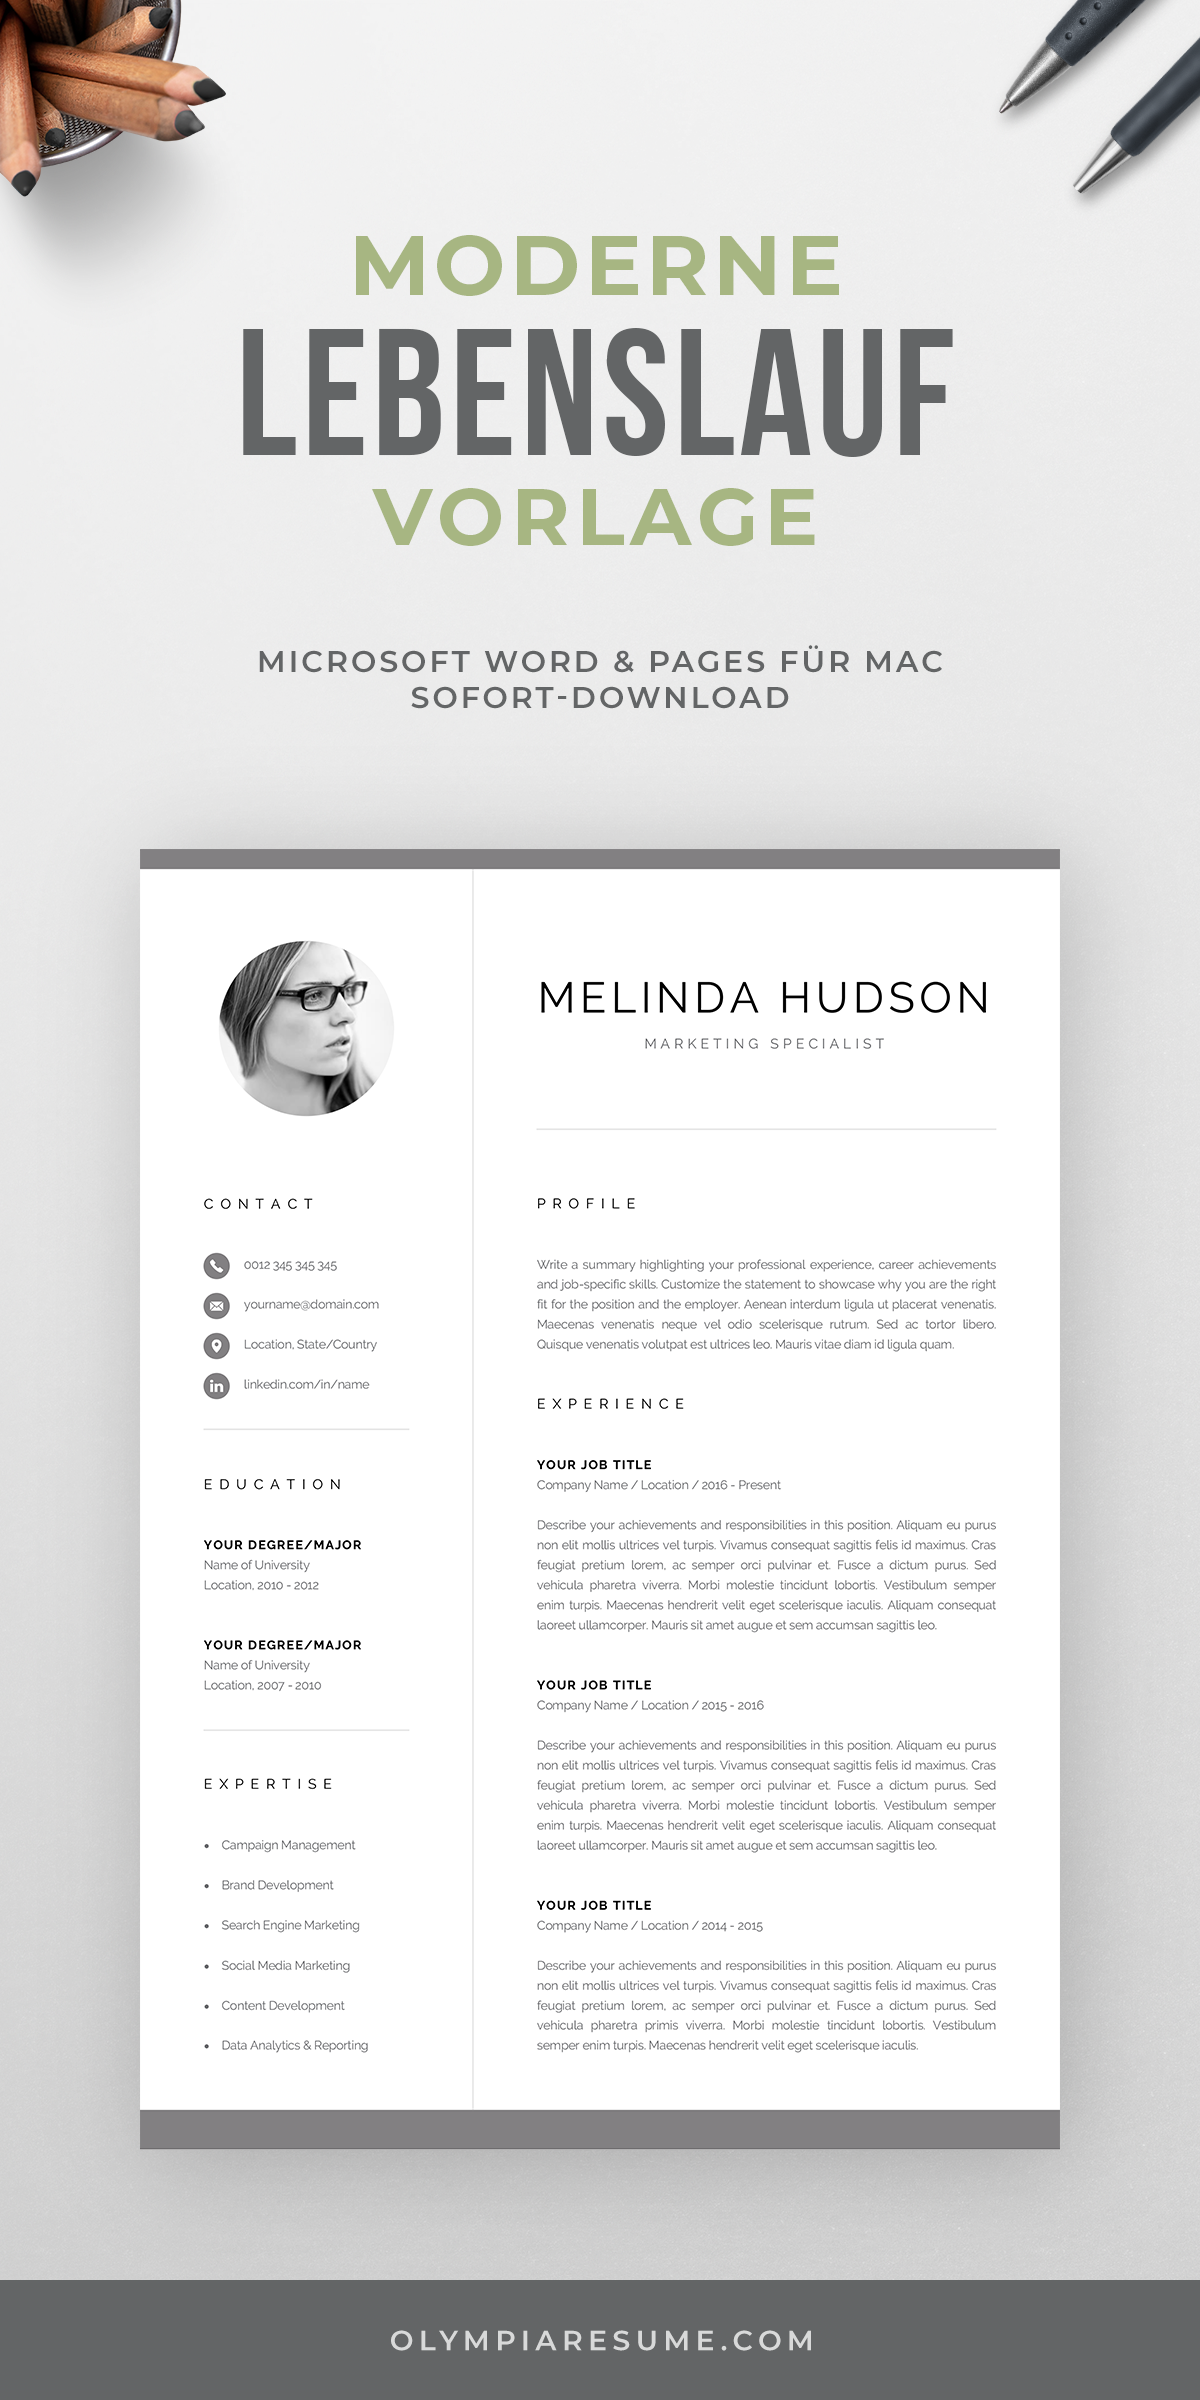 Cv Template With Photo Professional Resume Template For Word And Mac Pages Modern Cv Design 1 2 Page Resume Cover Letter Melinda In 2021 Cv Template Resume Template Professional Resume Template Word